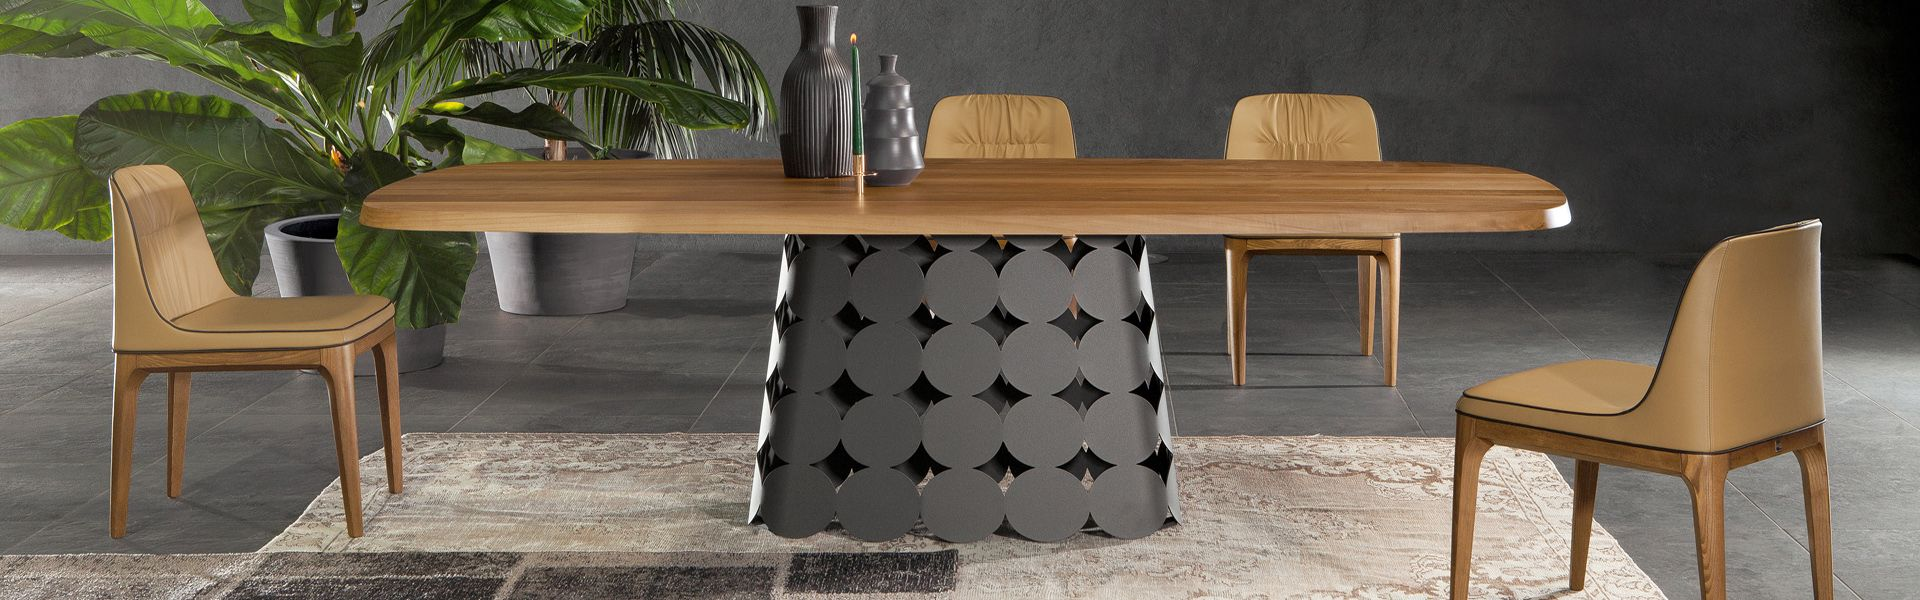 Mobilier de Jardin Design Sifas : Outdoor, Dedon, Flexform, Royal ...